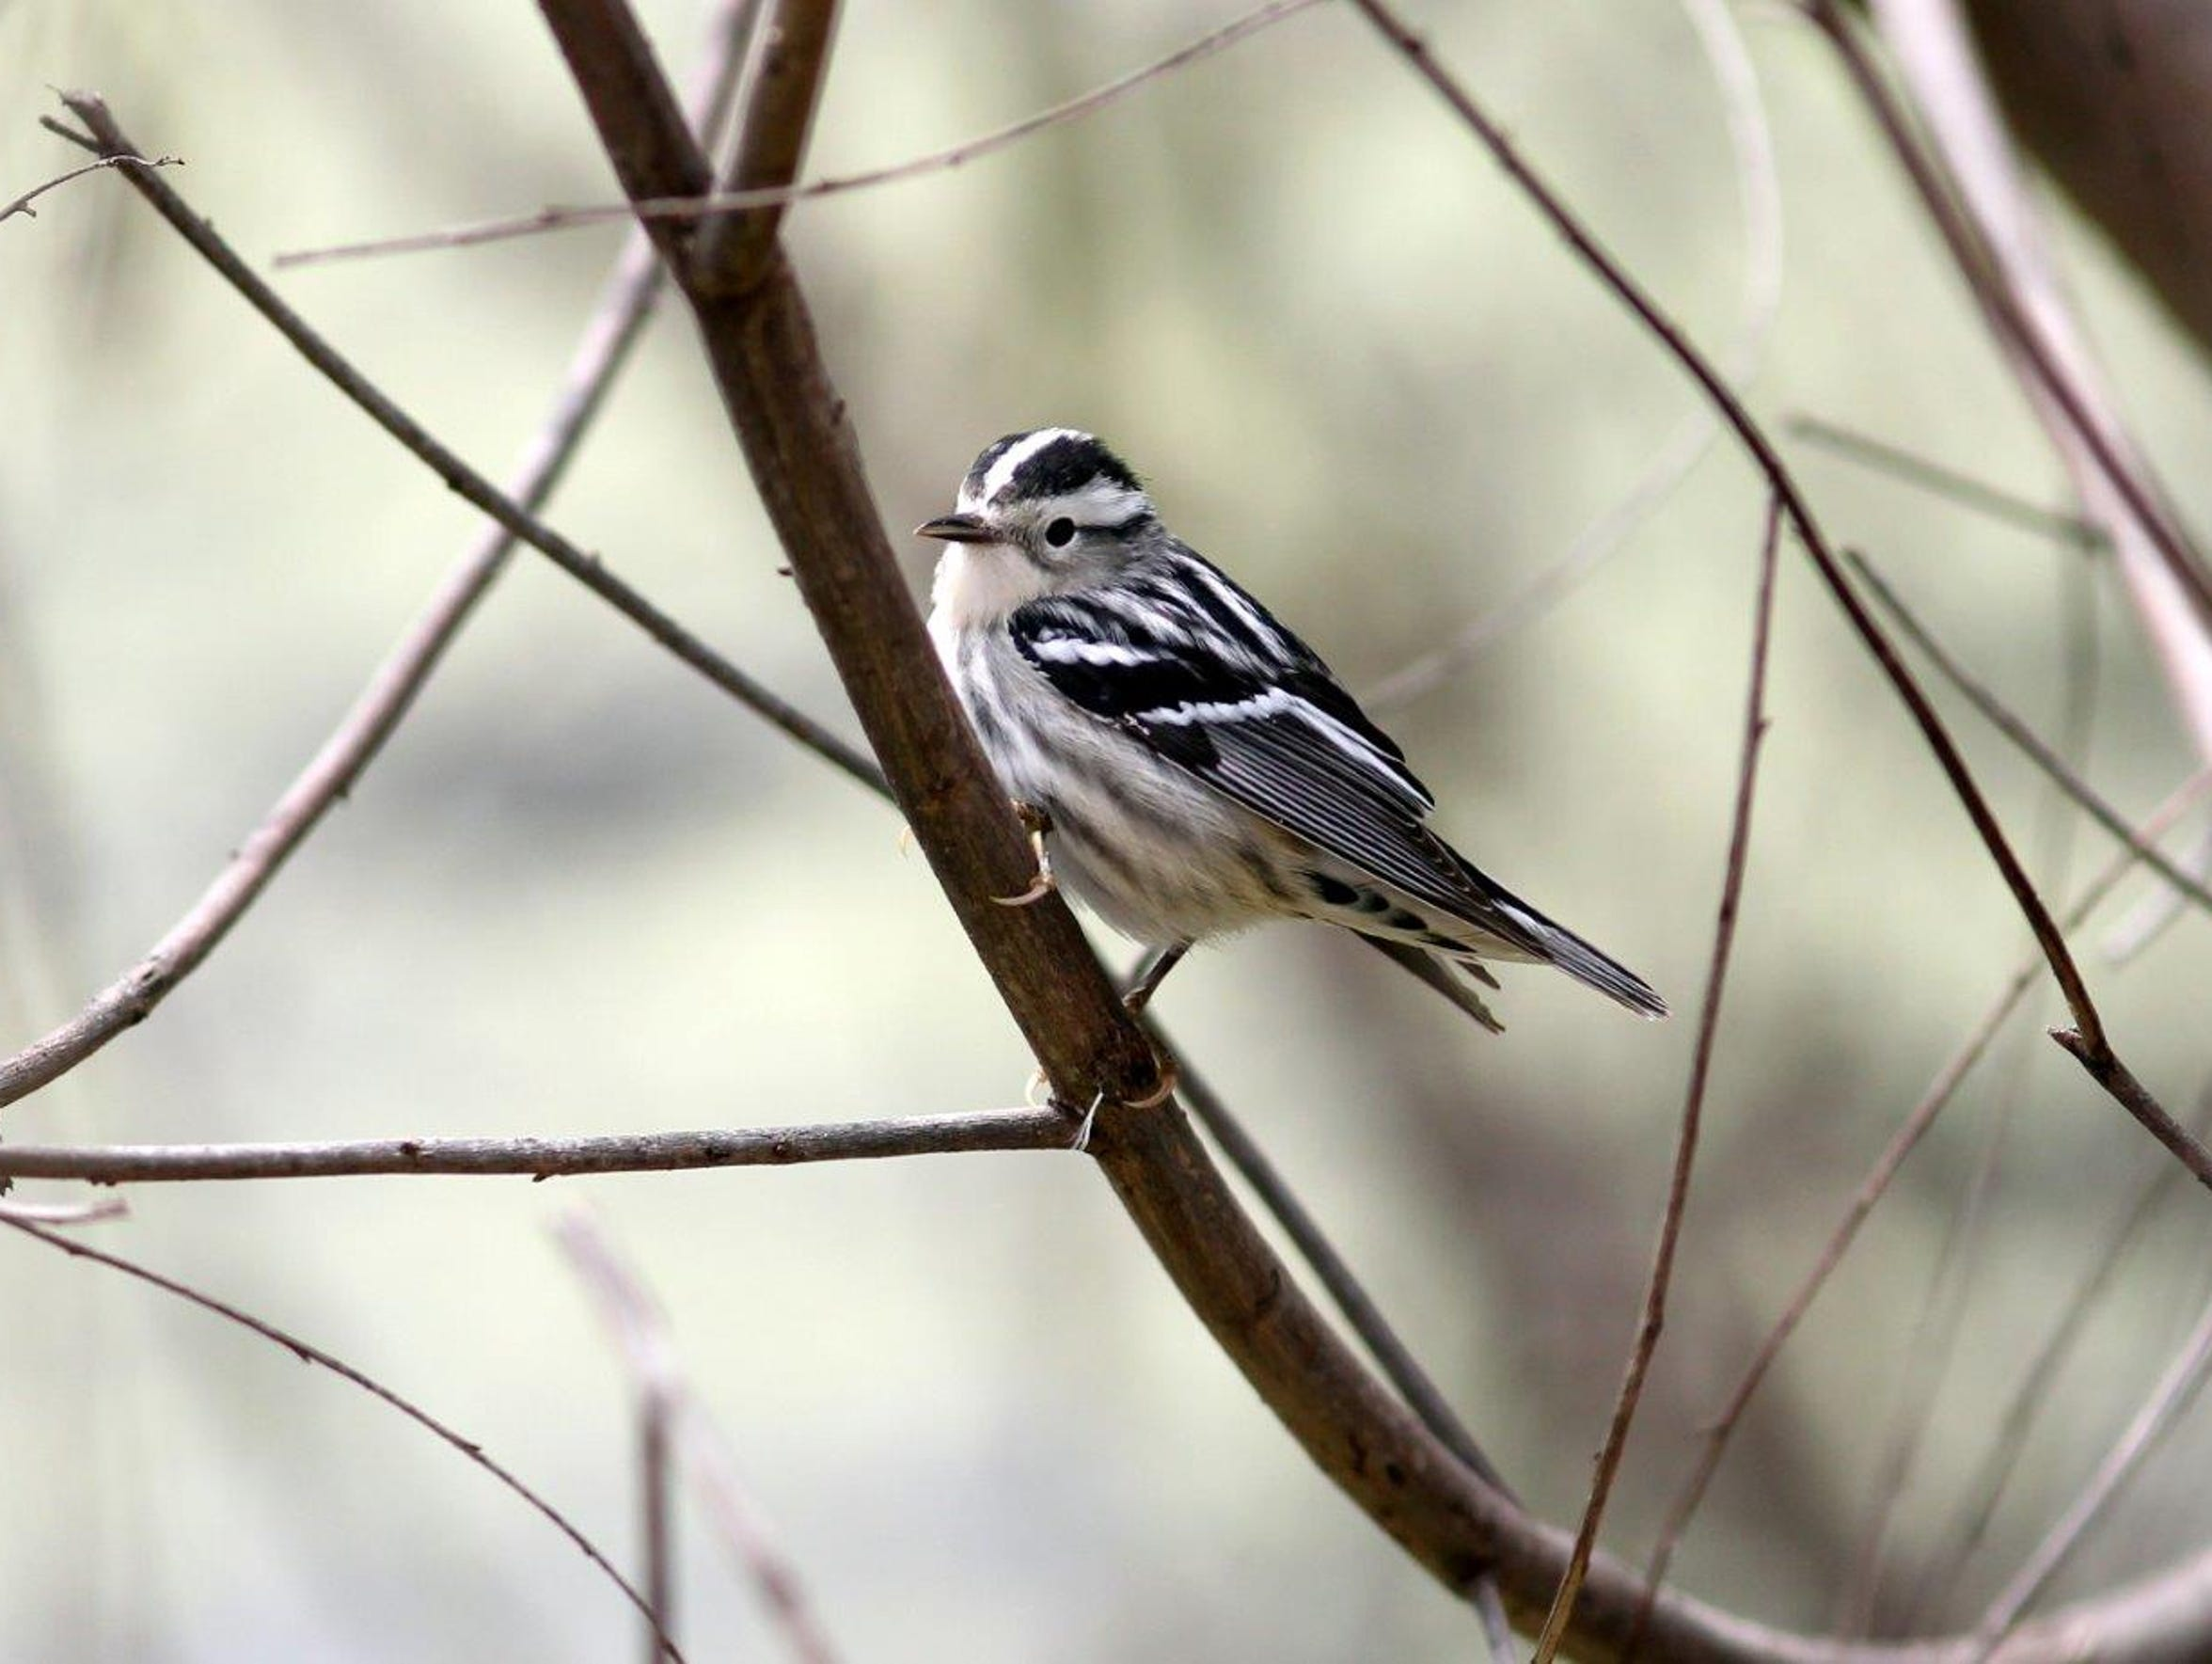 This female Black and White Warbler was shot at Joan